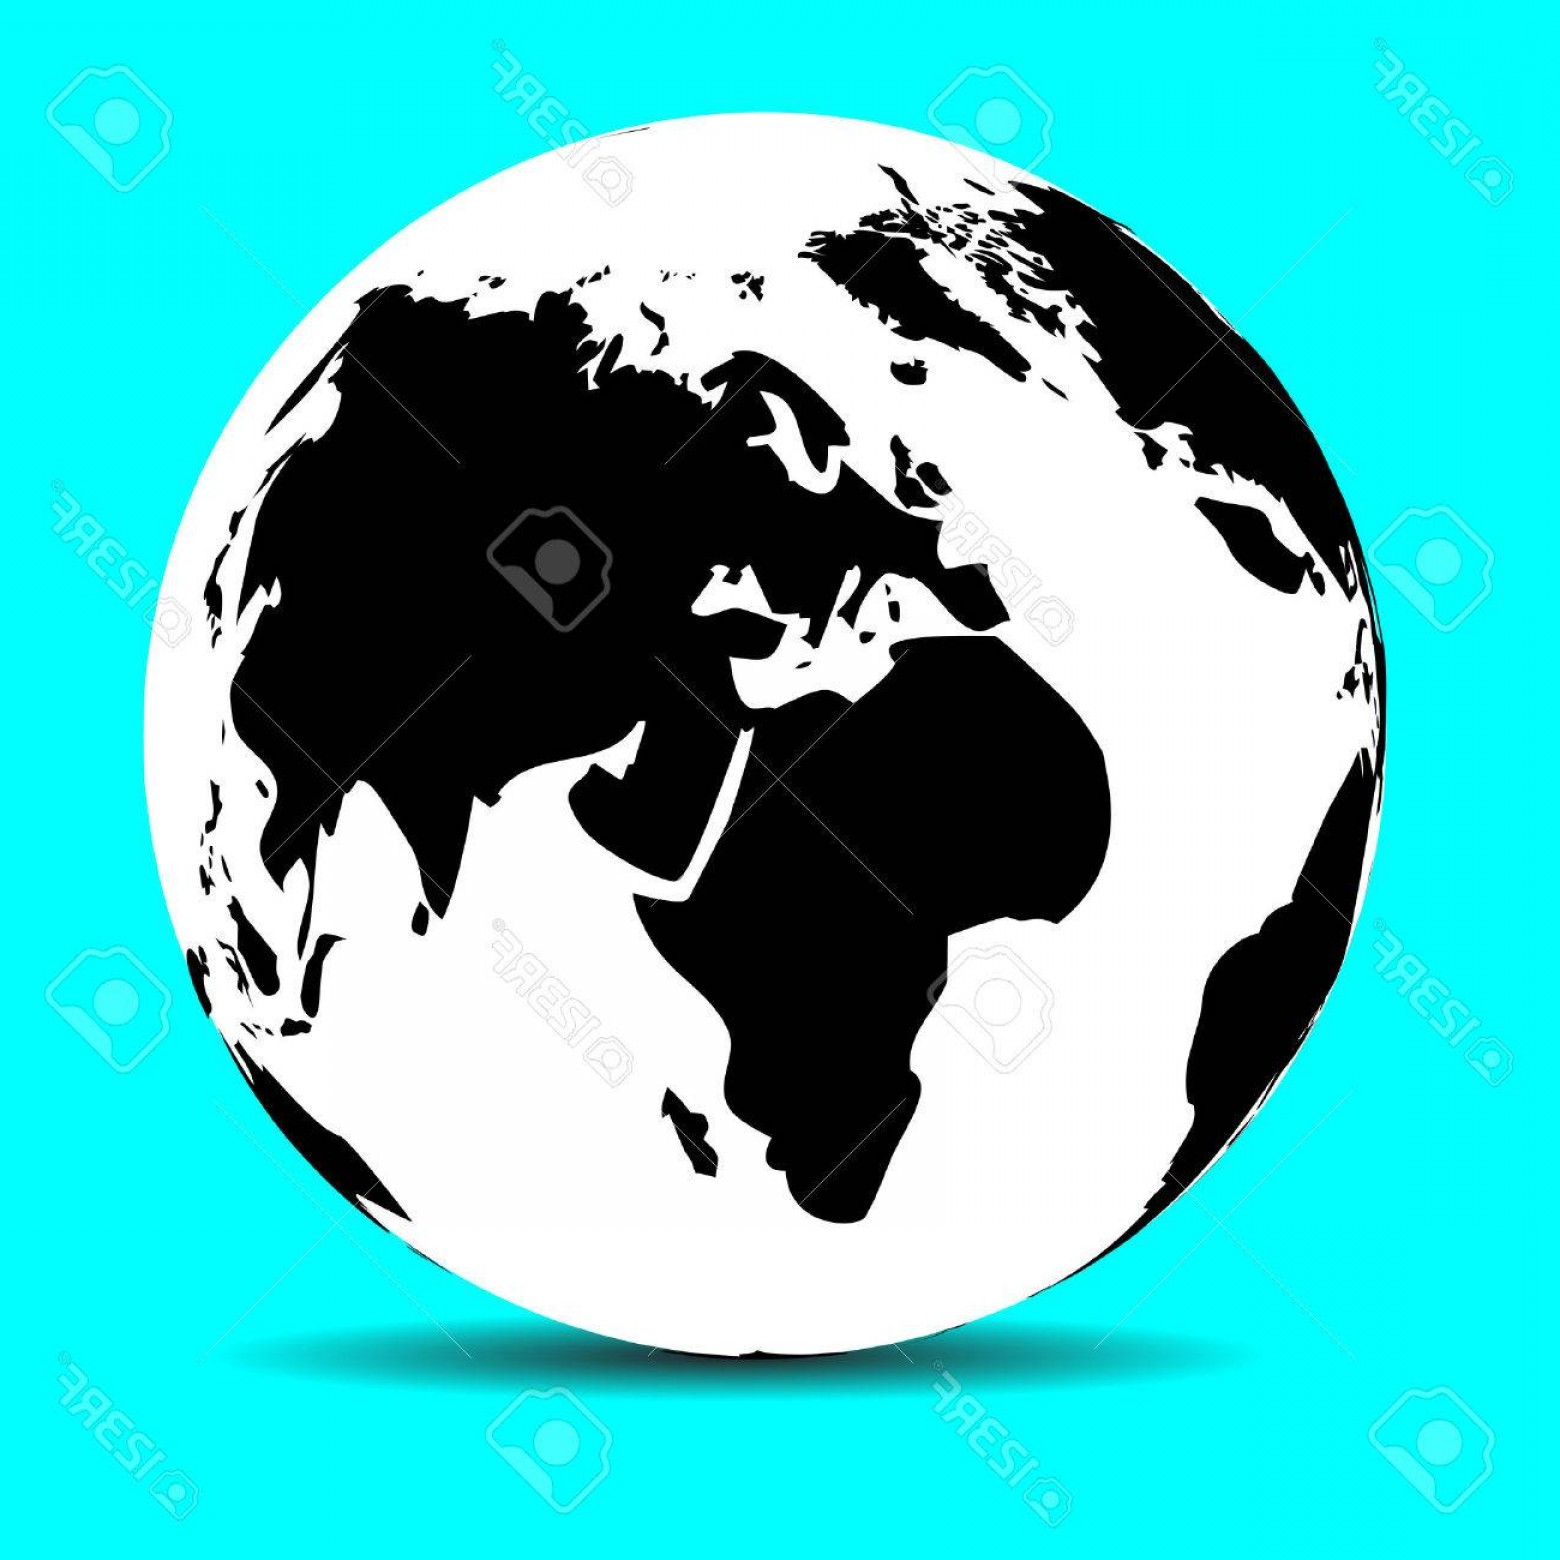 1560x1560 Photostock Vector Globe Map Earth Continent And Ocean Planet And